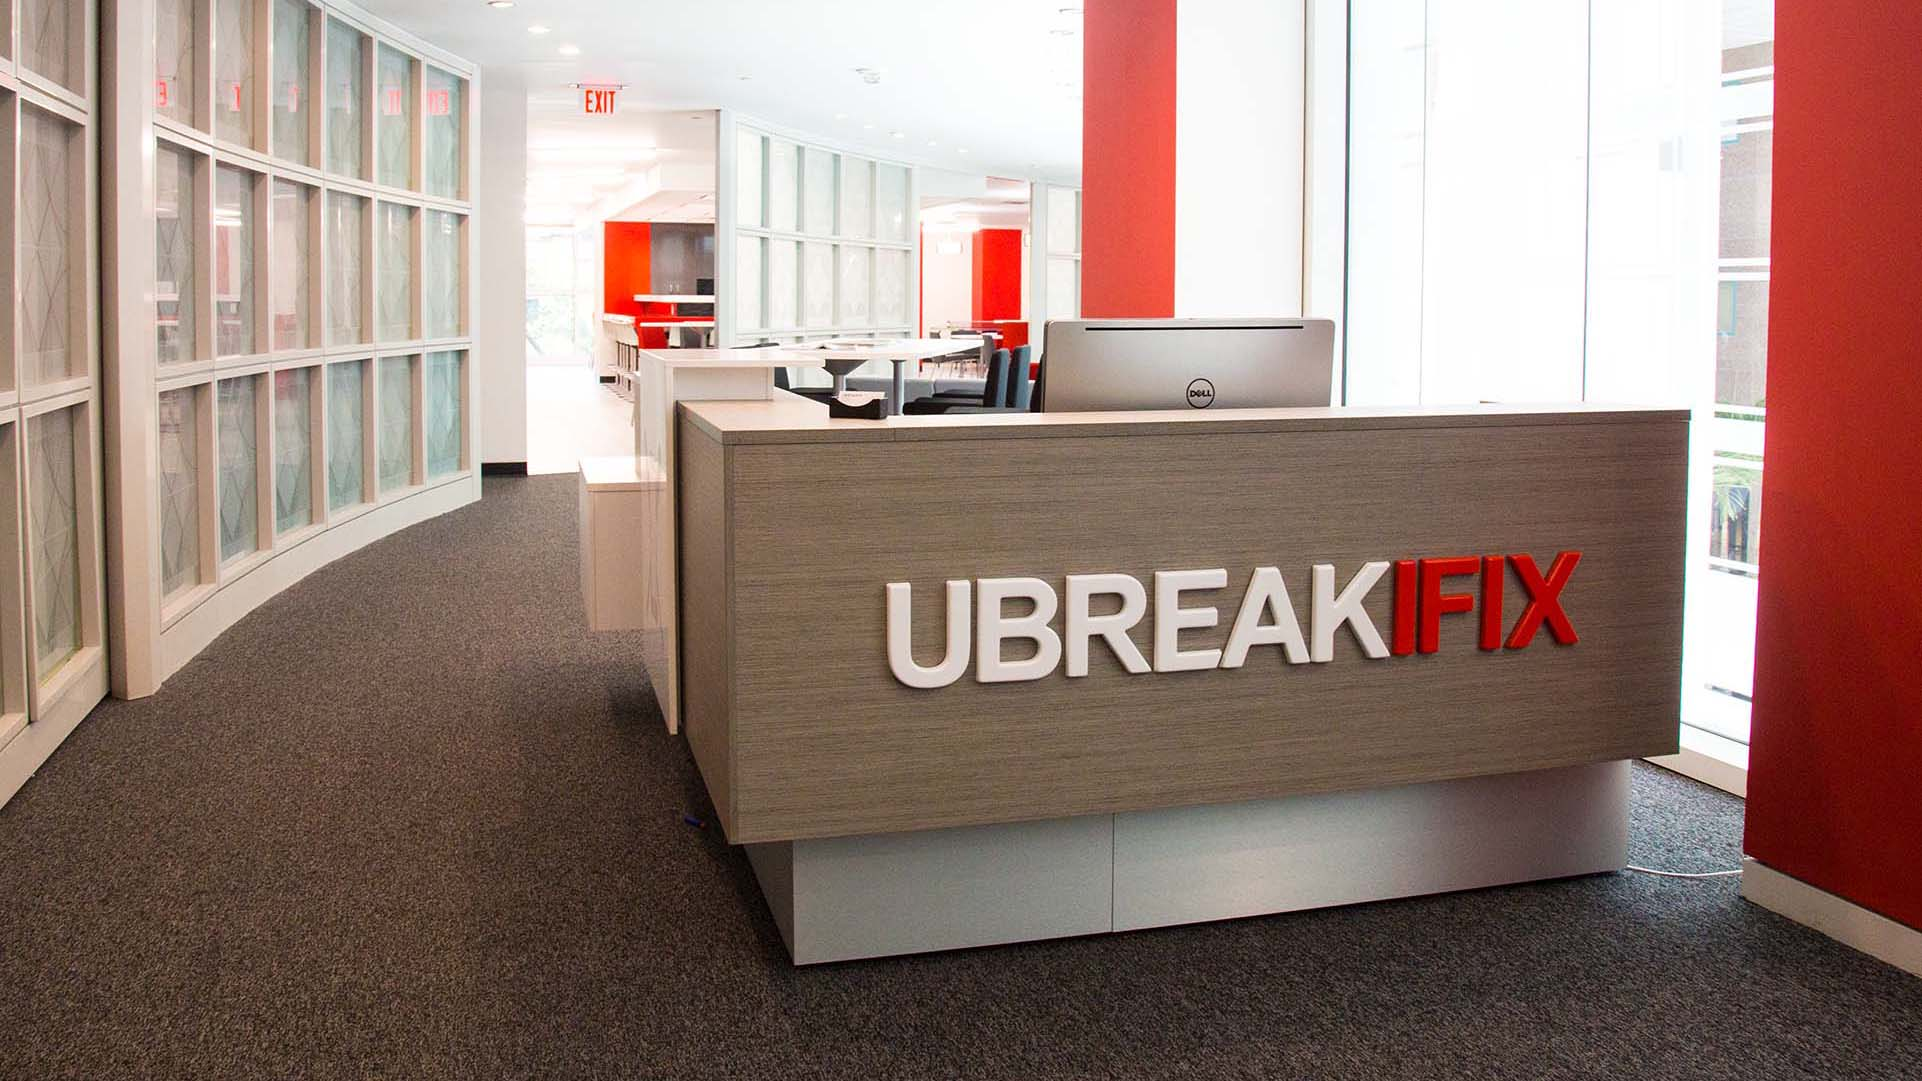 Asurion Buys uBreakiFix, Proving Repair Is Big Business - iFixit